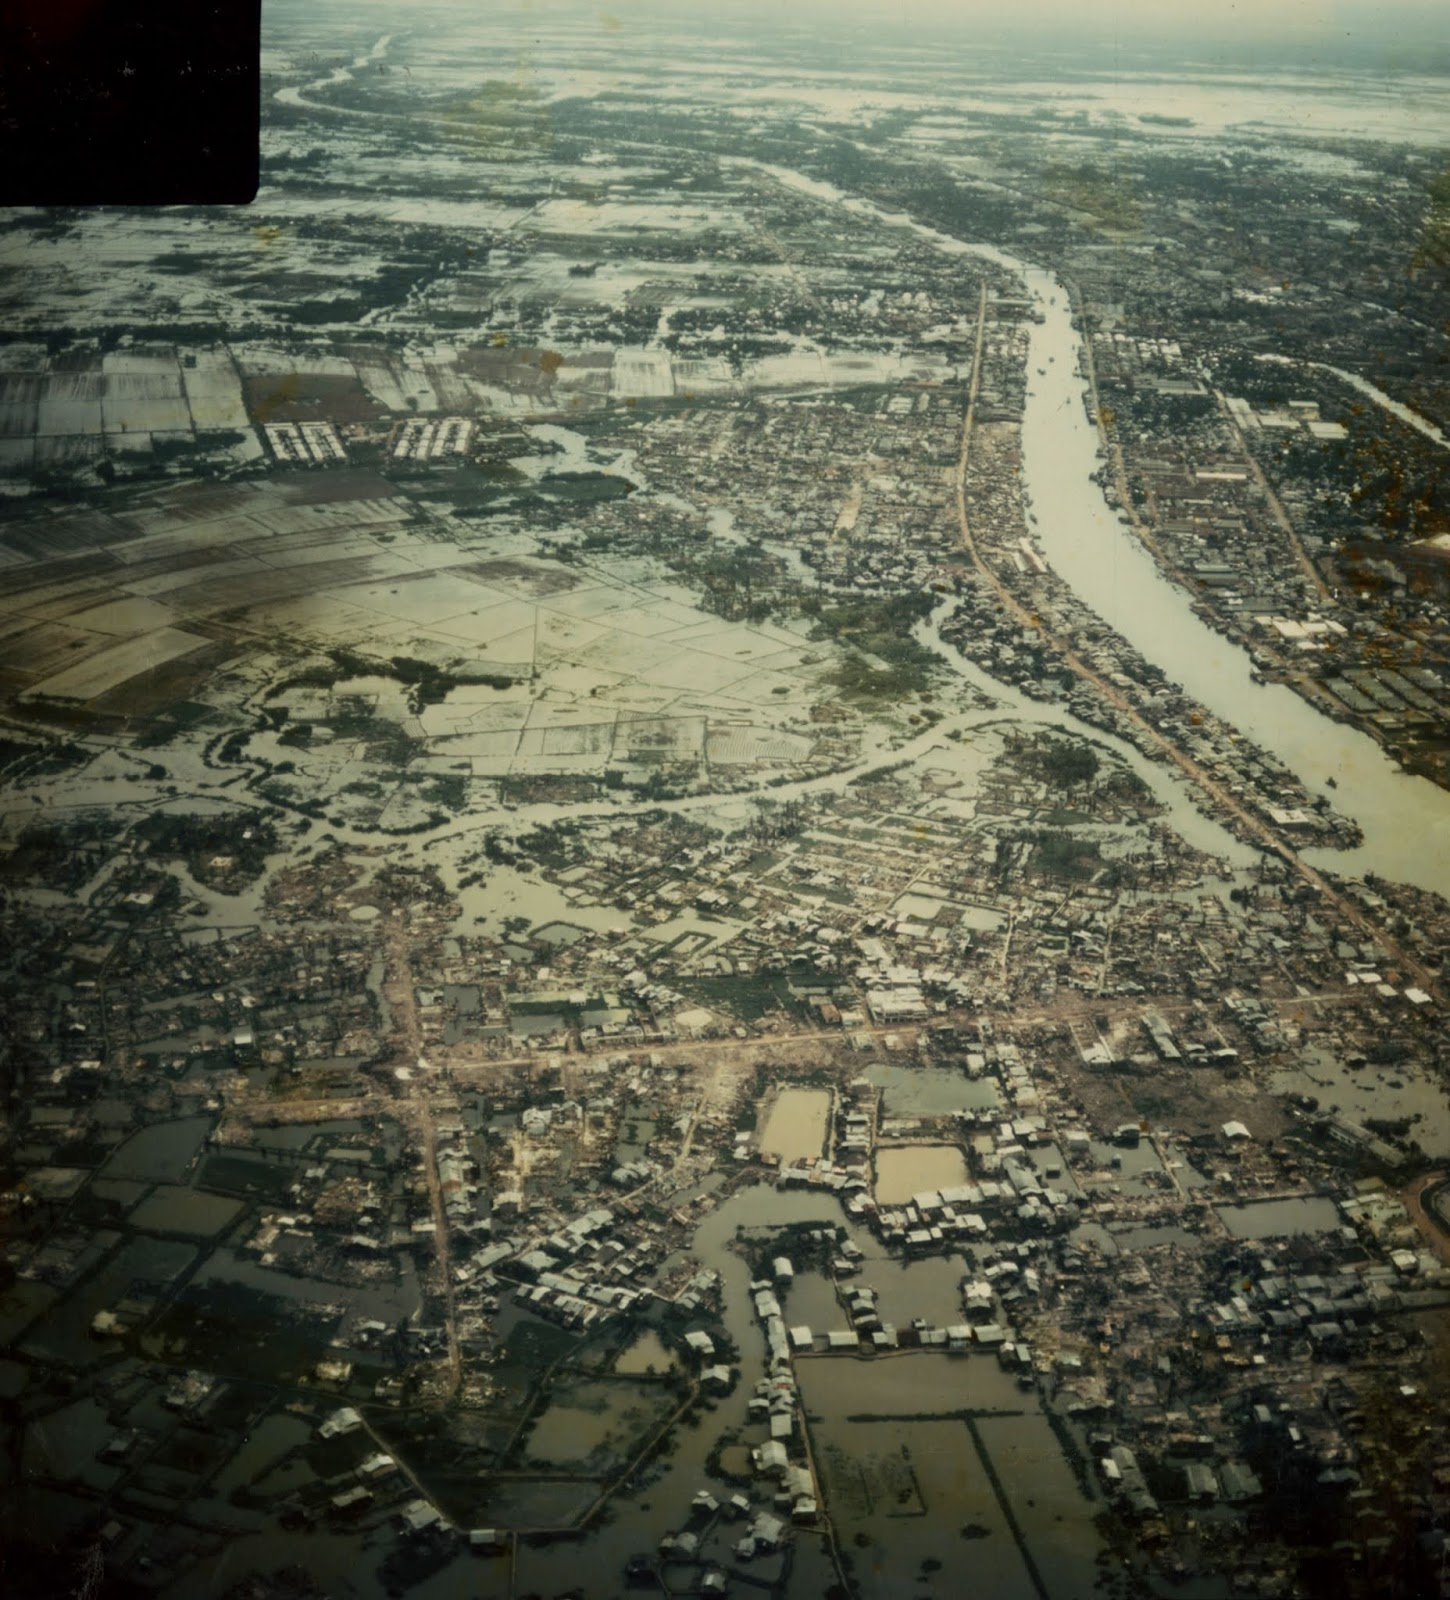 1968 Aerial View of Saigon